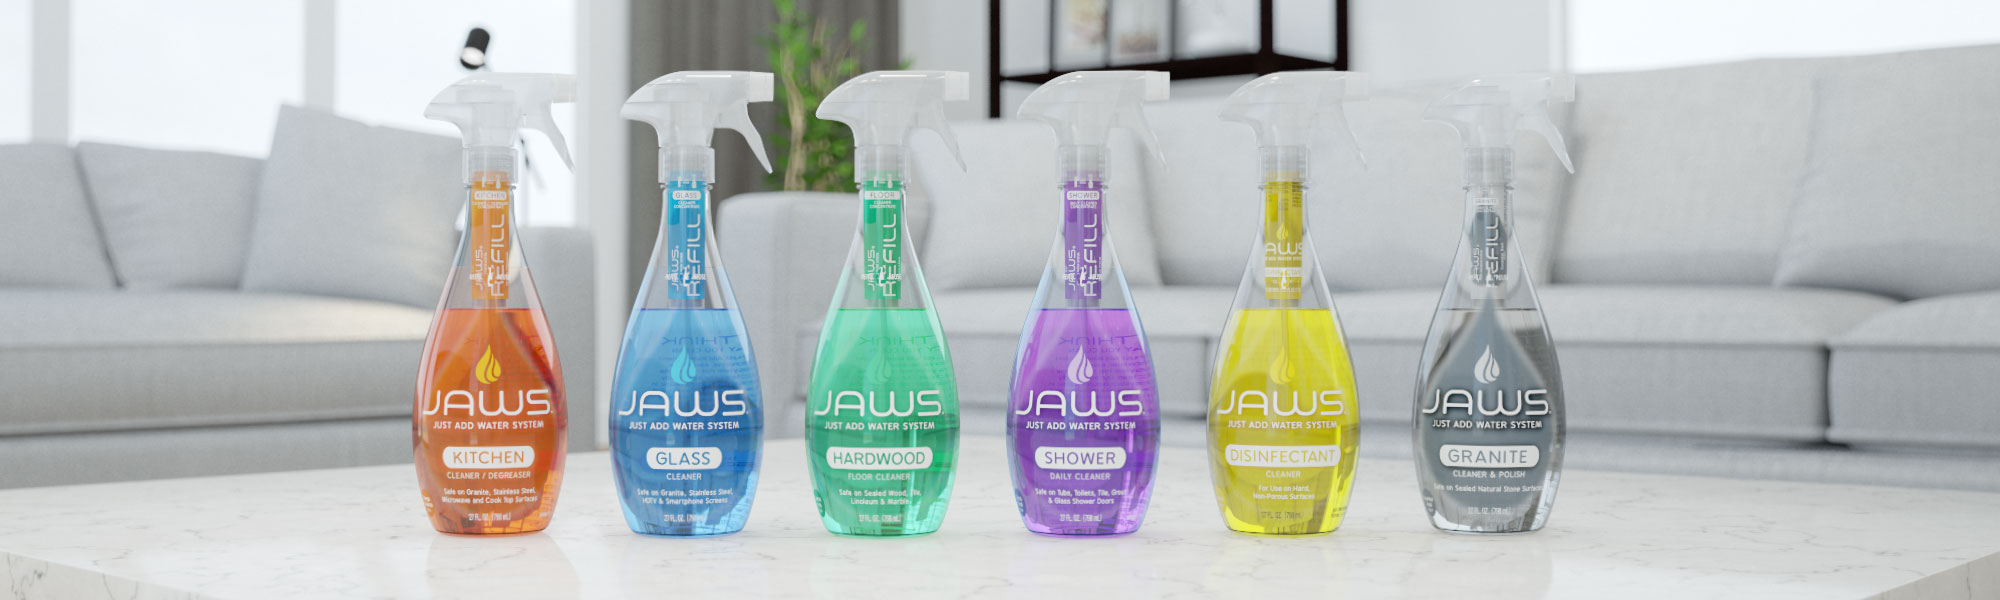 Jaws Eco Friendly Cleaning Products